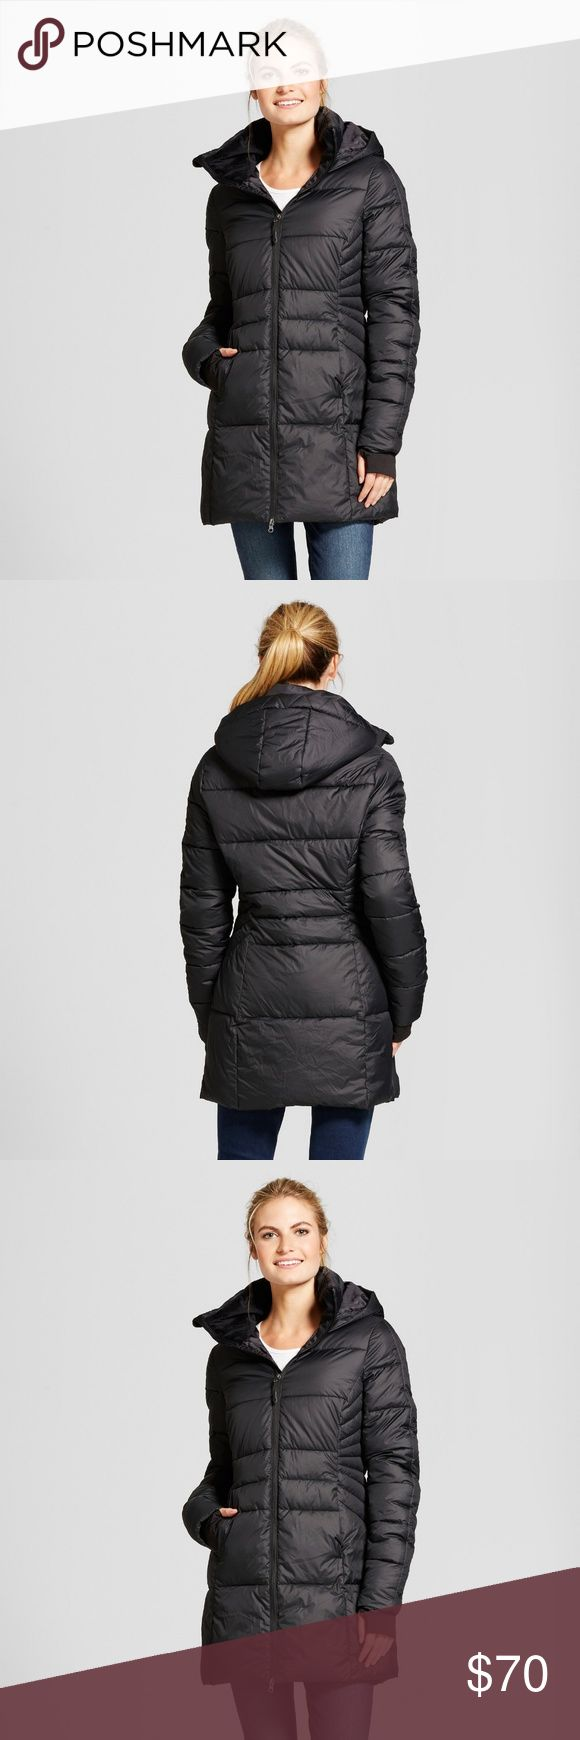 Women's Puffer Coat Black XL With an asymmetrical zip, this winter coat features compressible lightweight insulation that keeps you warm and active. Size XL Color: Black Jackets & Coats